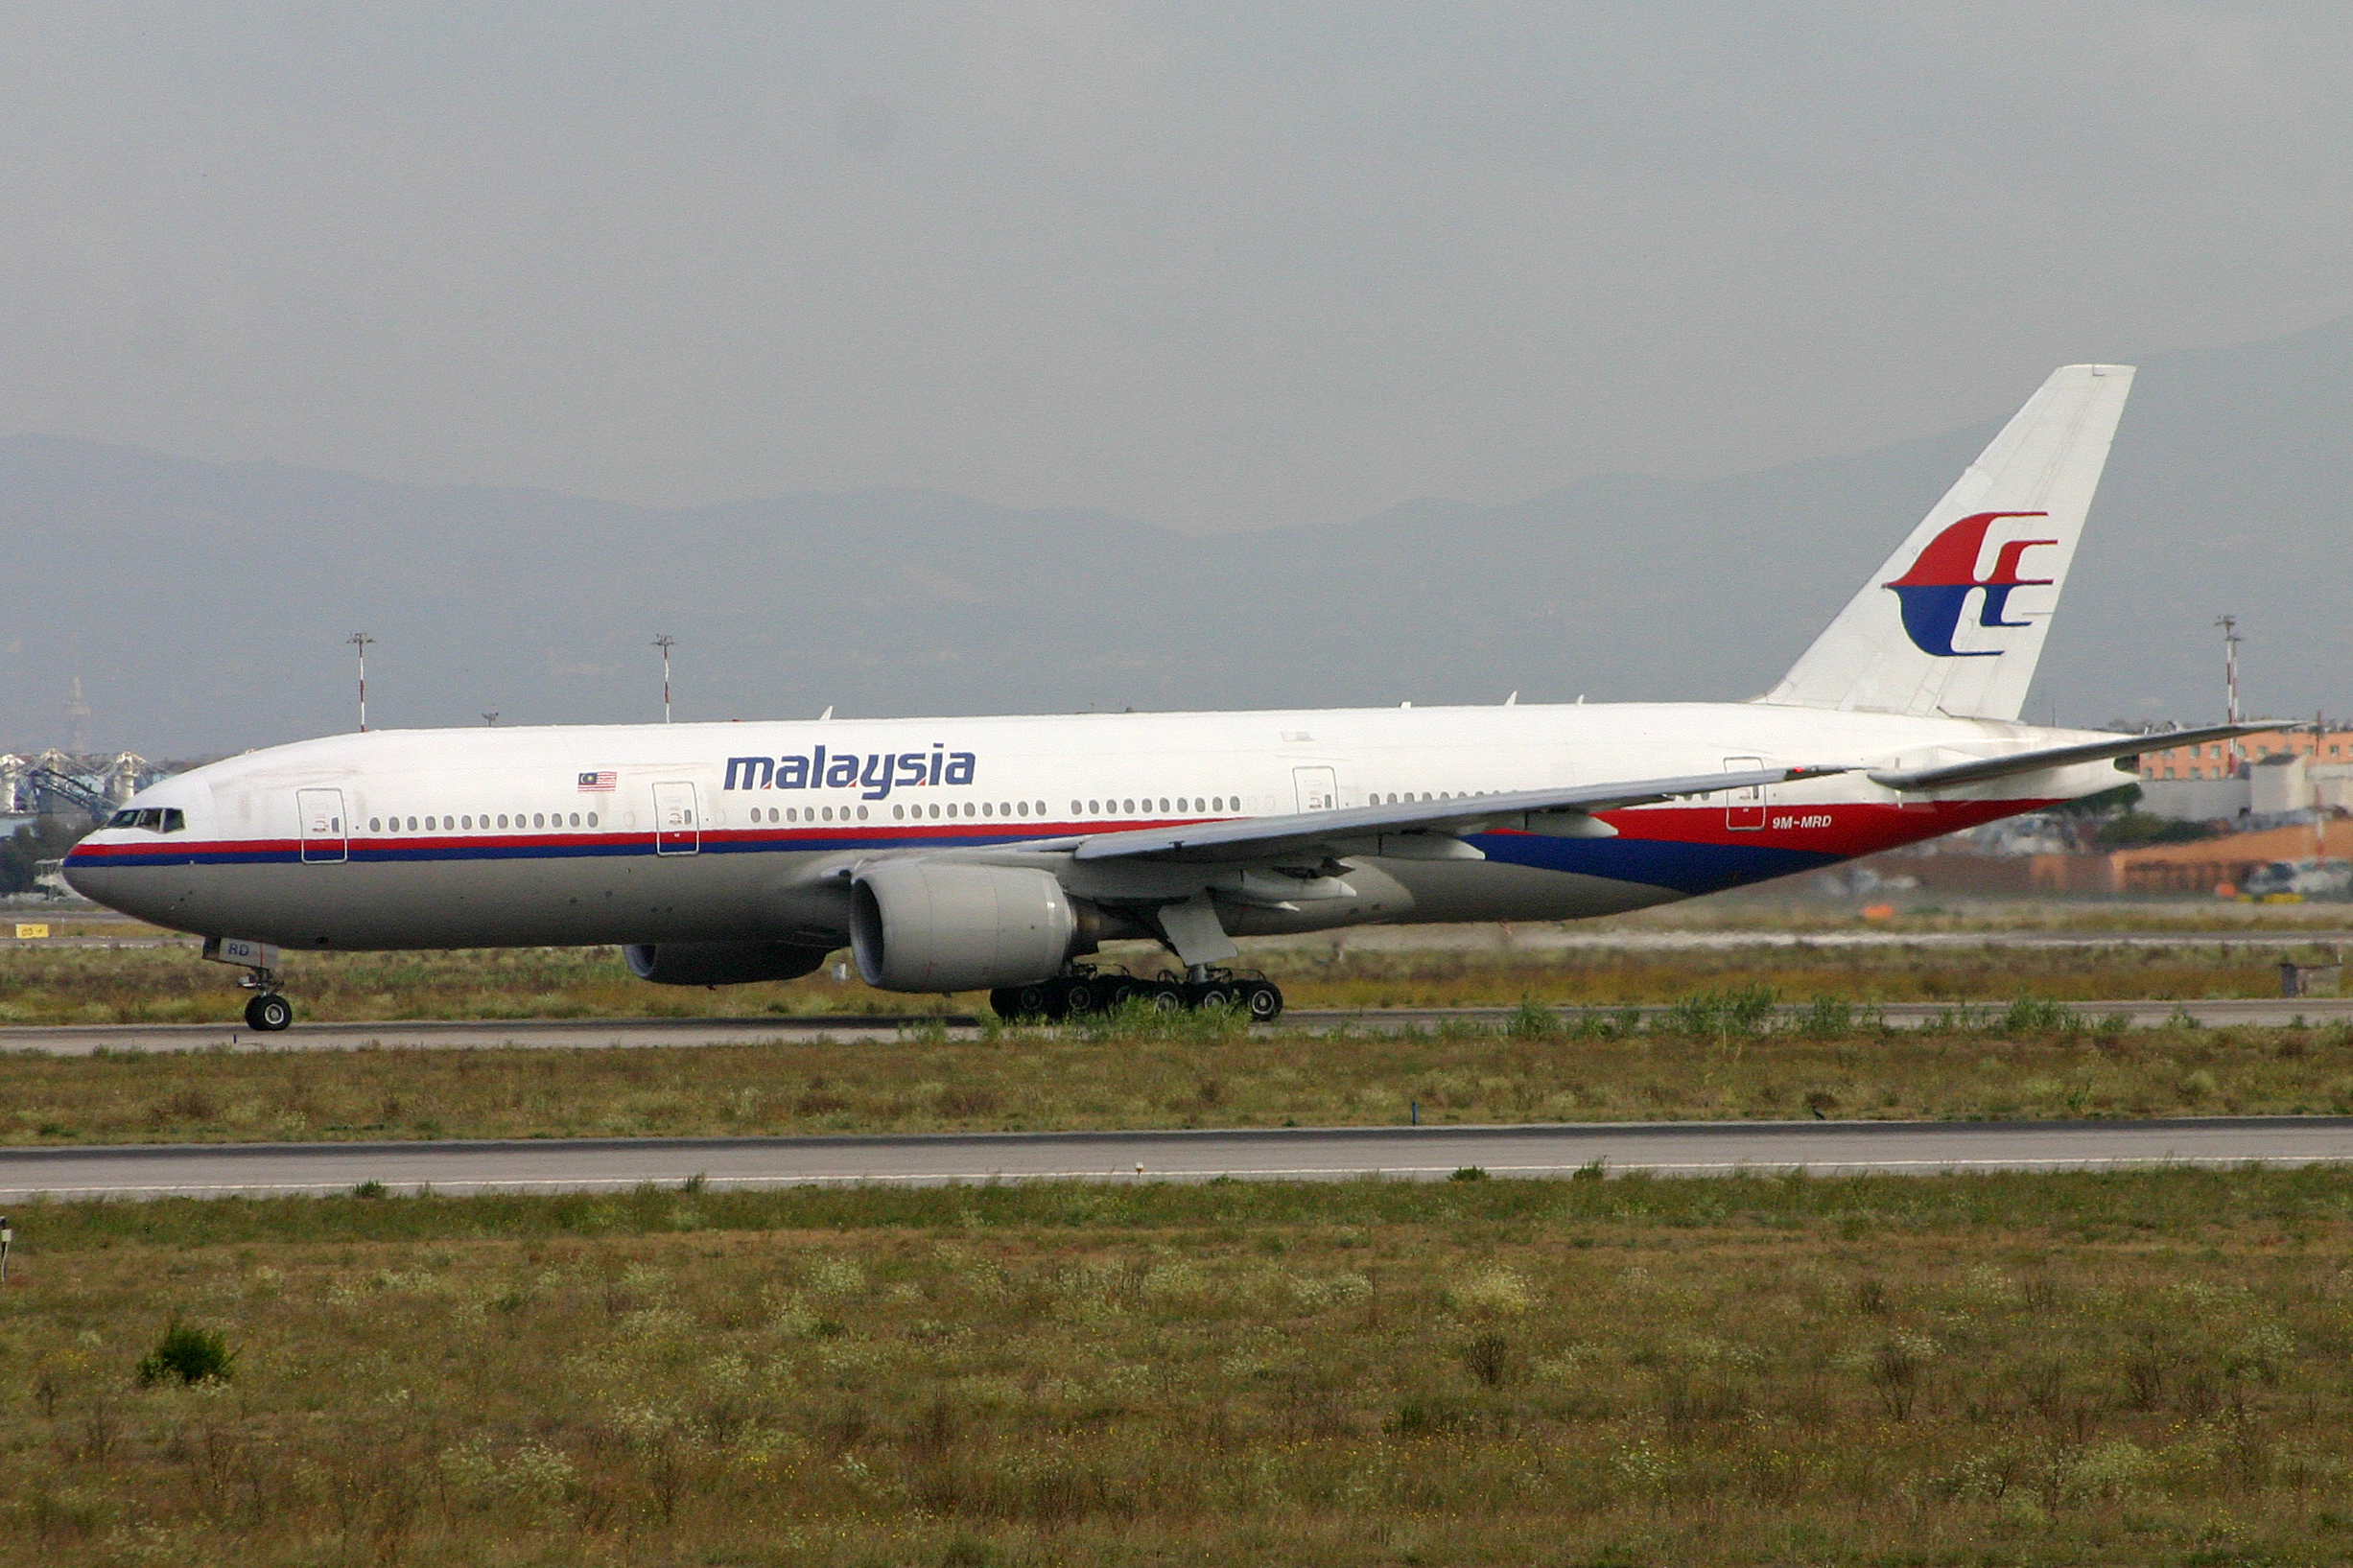 Depiction of Vuelo 17 de Malaysia Airlines